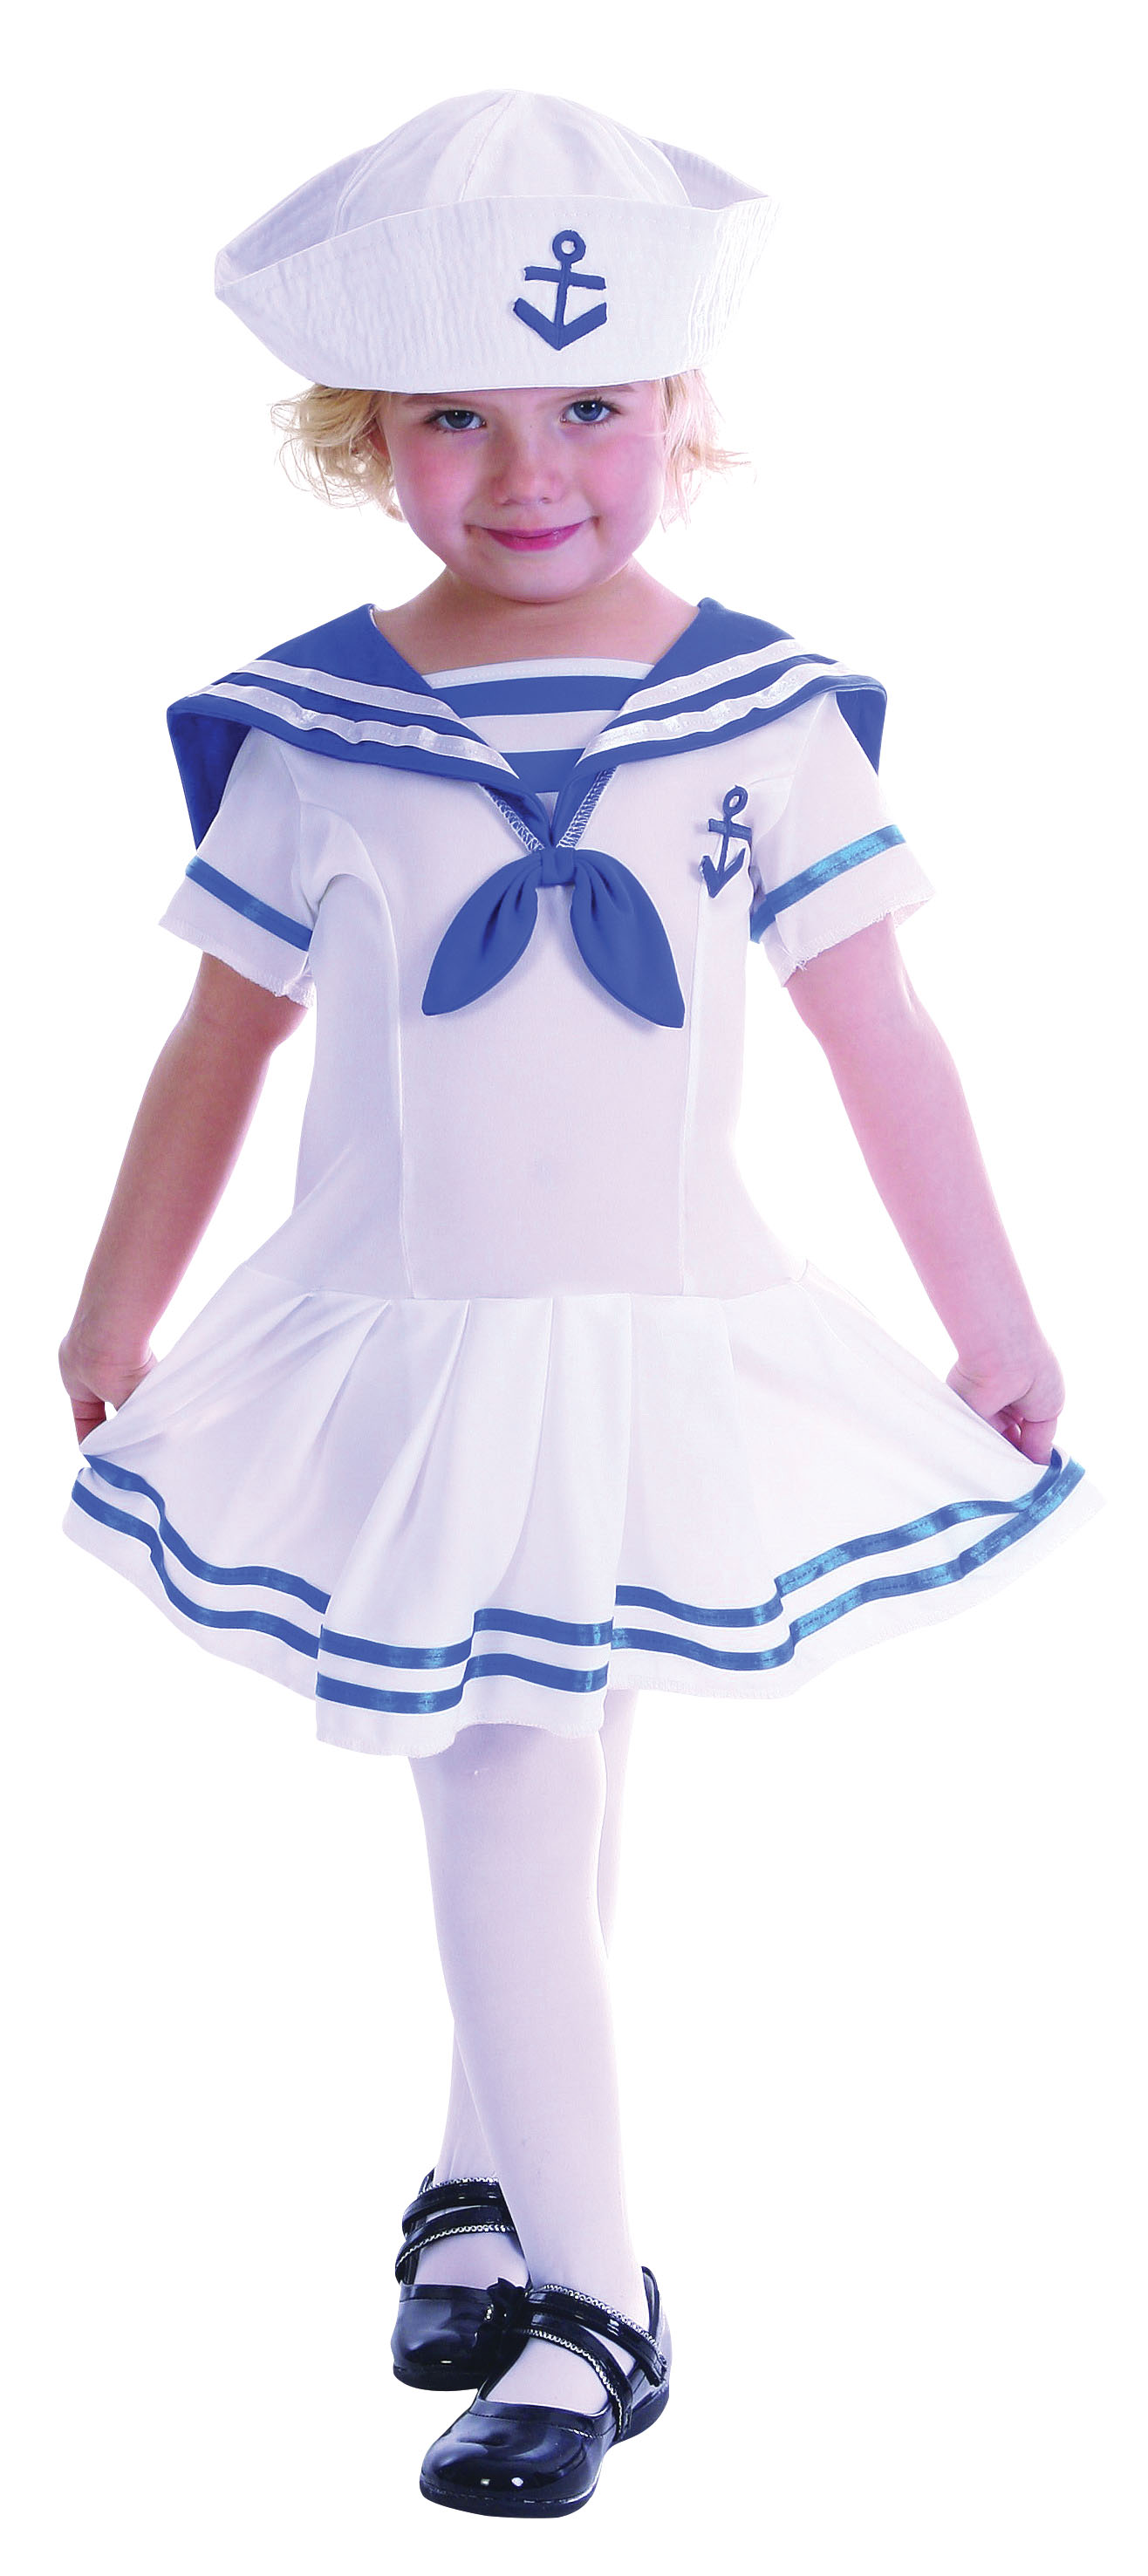 Sailor Girl Toddler Costume Military And Uniform